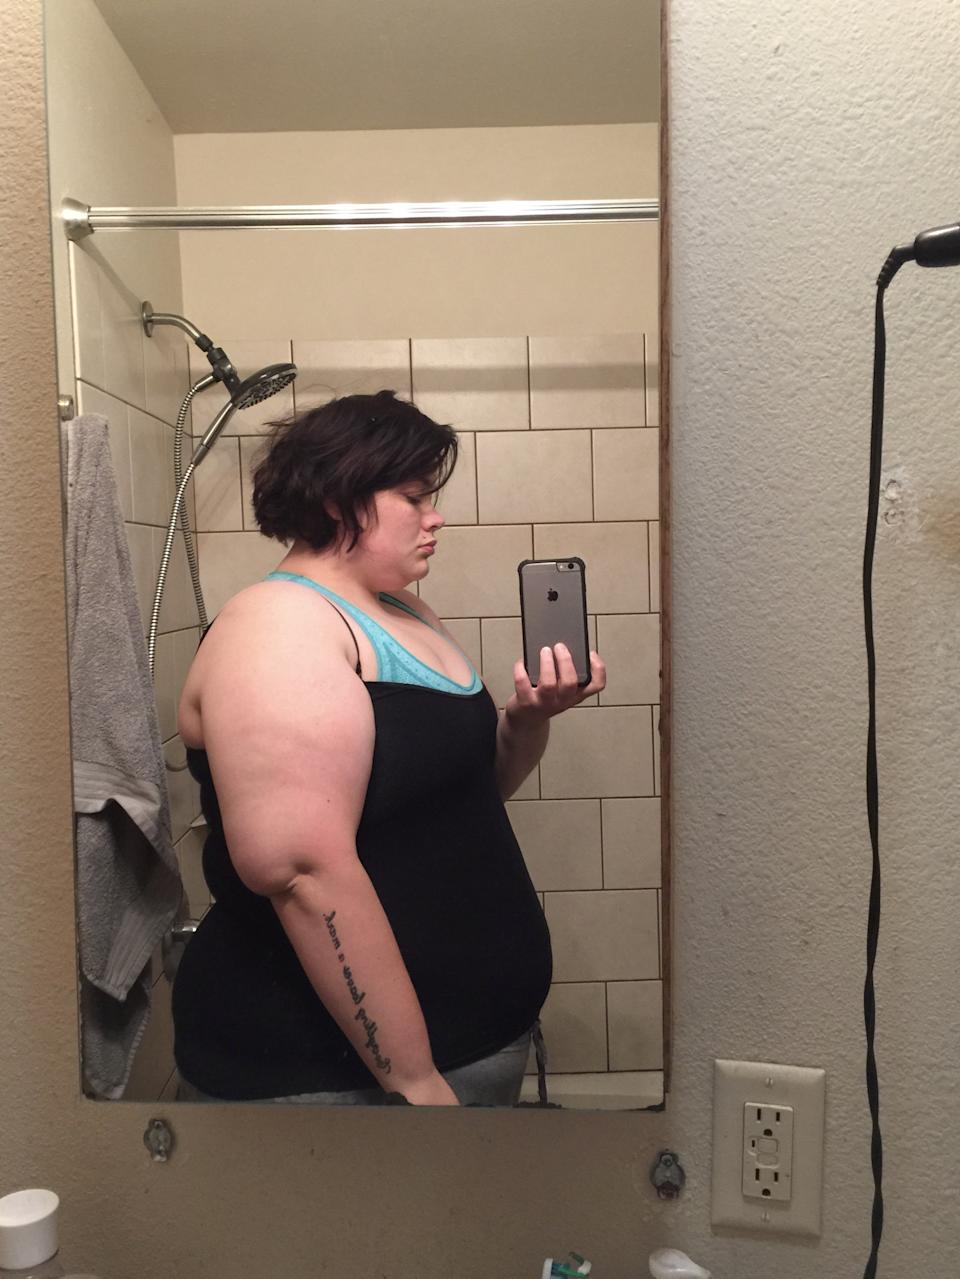 Back in 2016 Kristen Bobo, 30, was a size 28 and had a binge eating disorder, spending most of her days gorging on junk foods.